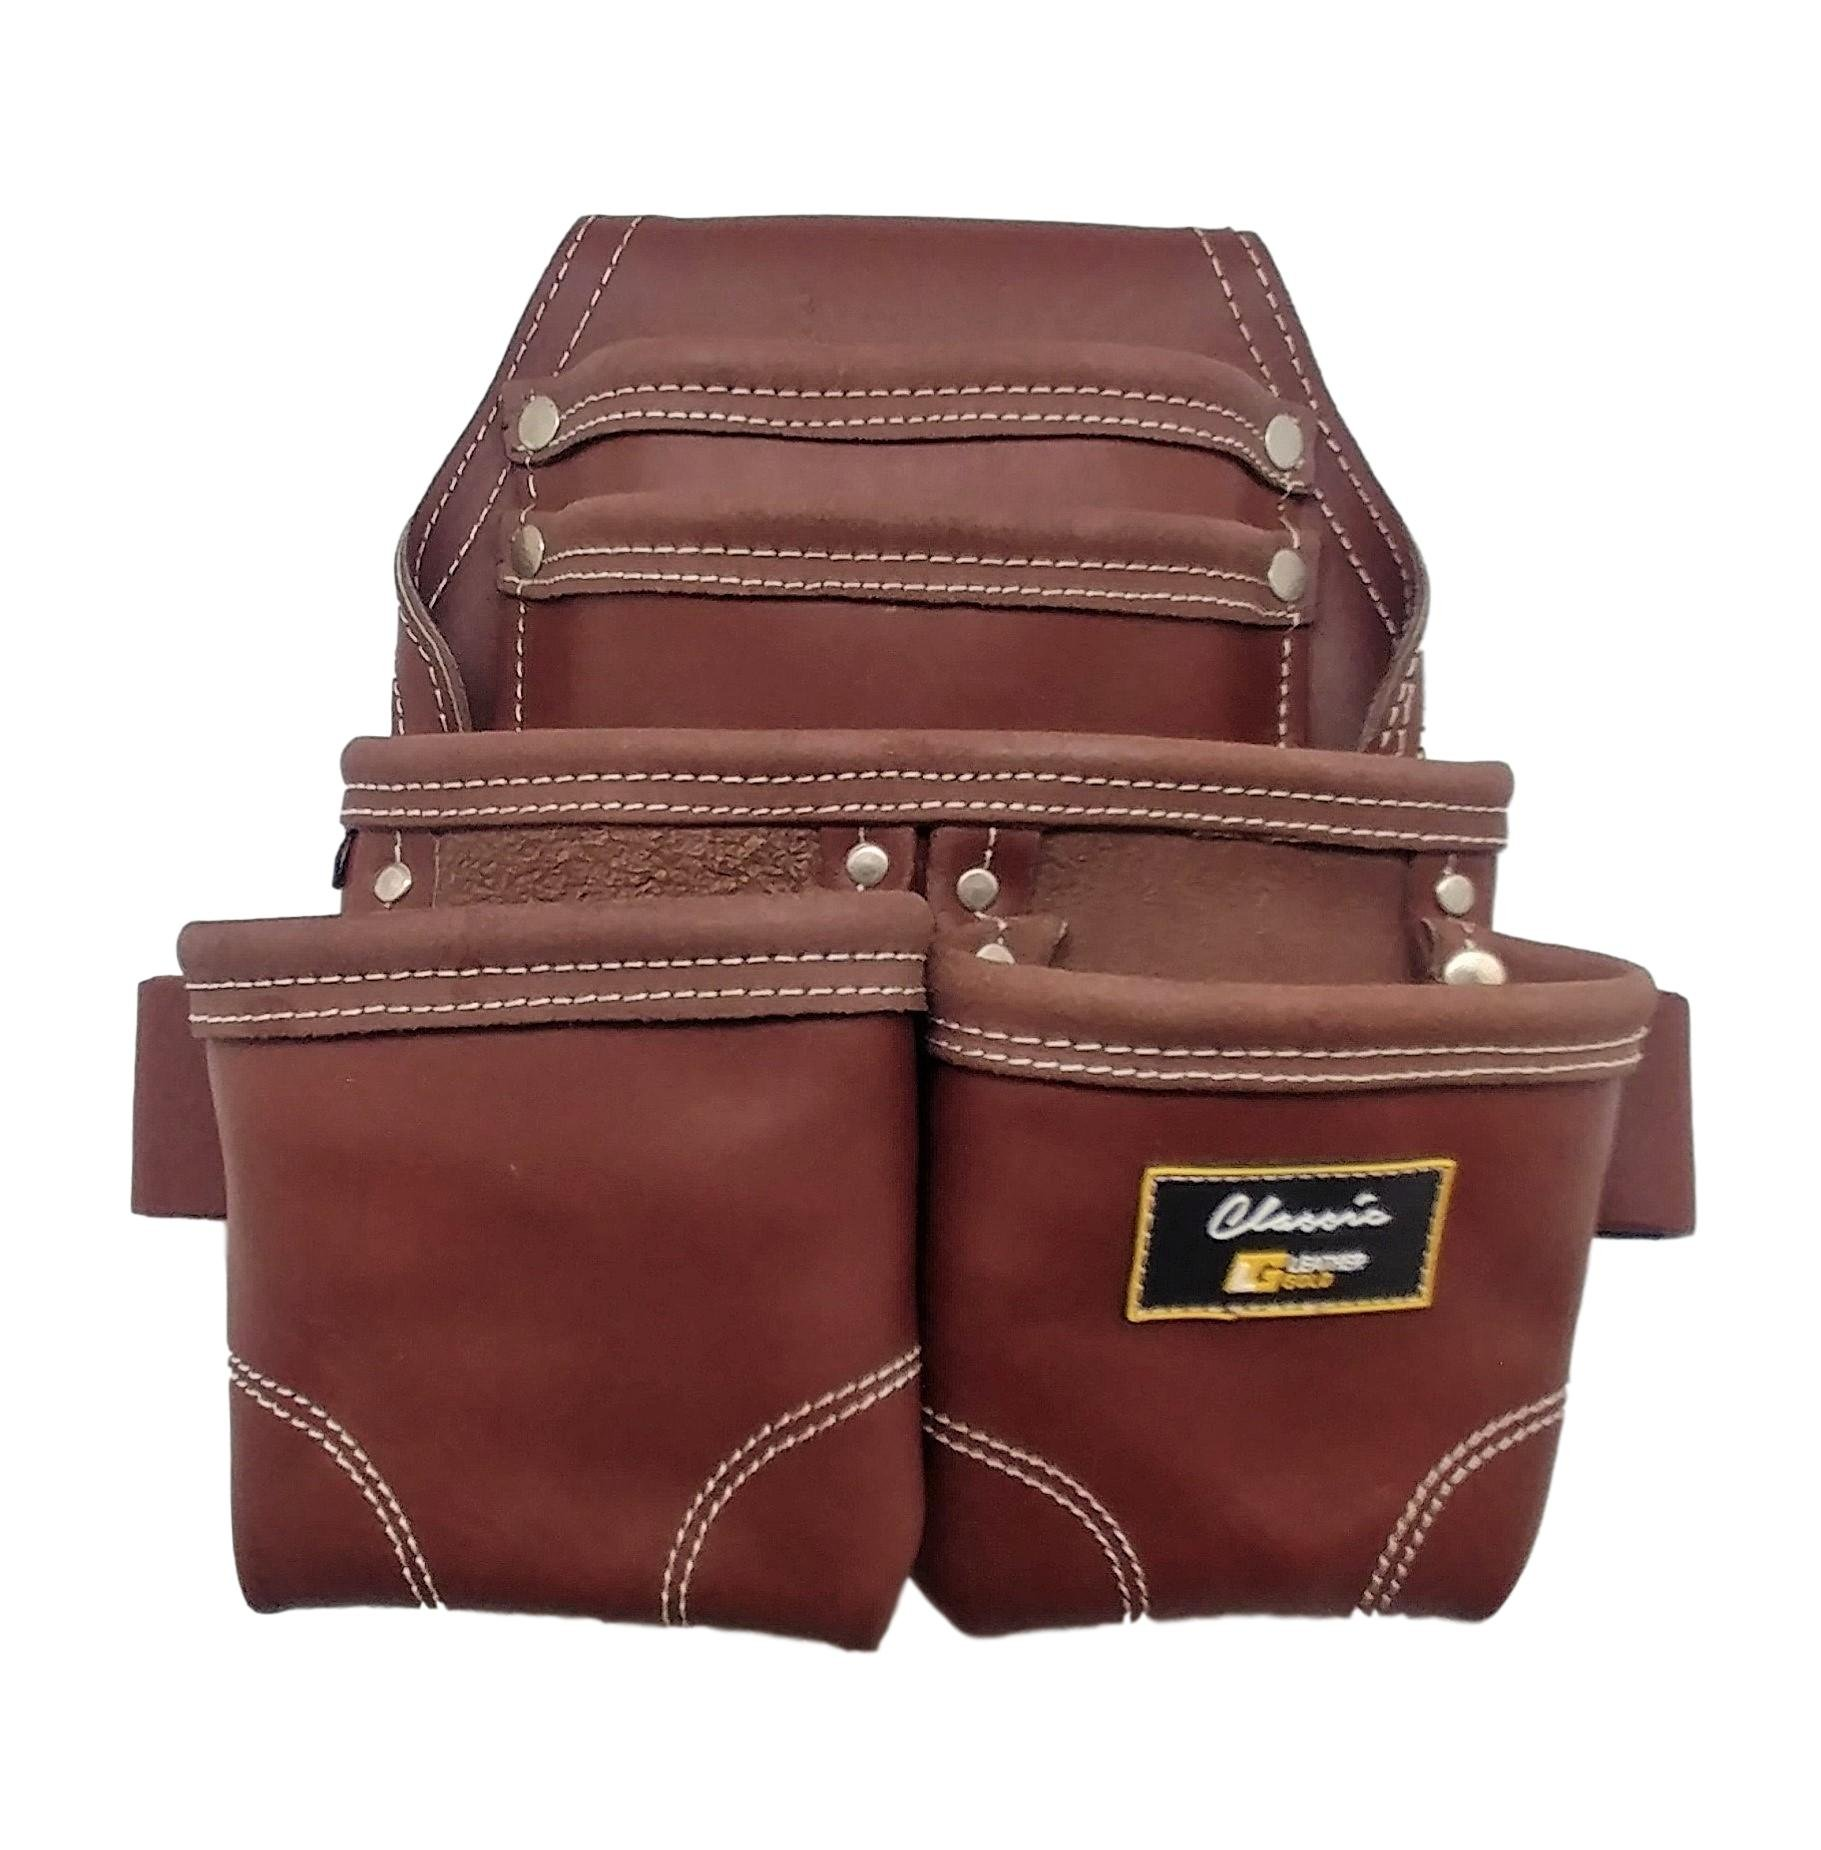 Leather Gold Nail Pouch | Leather Tool Pouch 3350DP, 5 Pockets, Brown, Oil-Tanned Leather, Heavy Duty Carpenter Tool Belt With Reinforced Seams and 2 Hammer Holders by Leather Gold